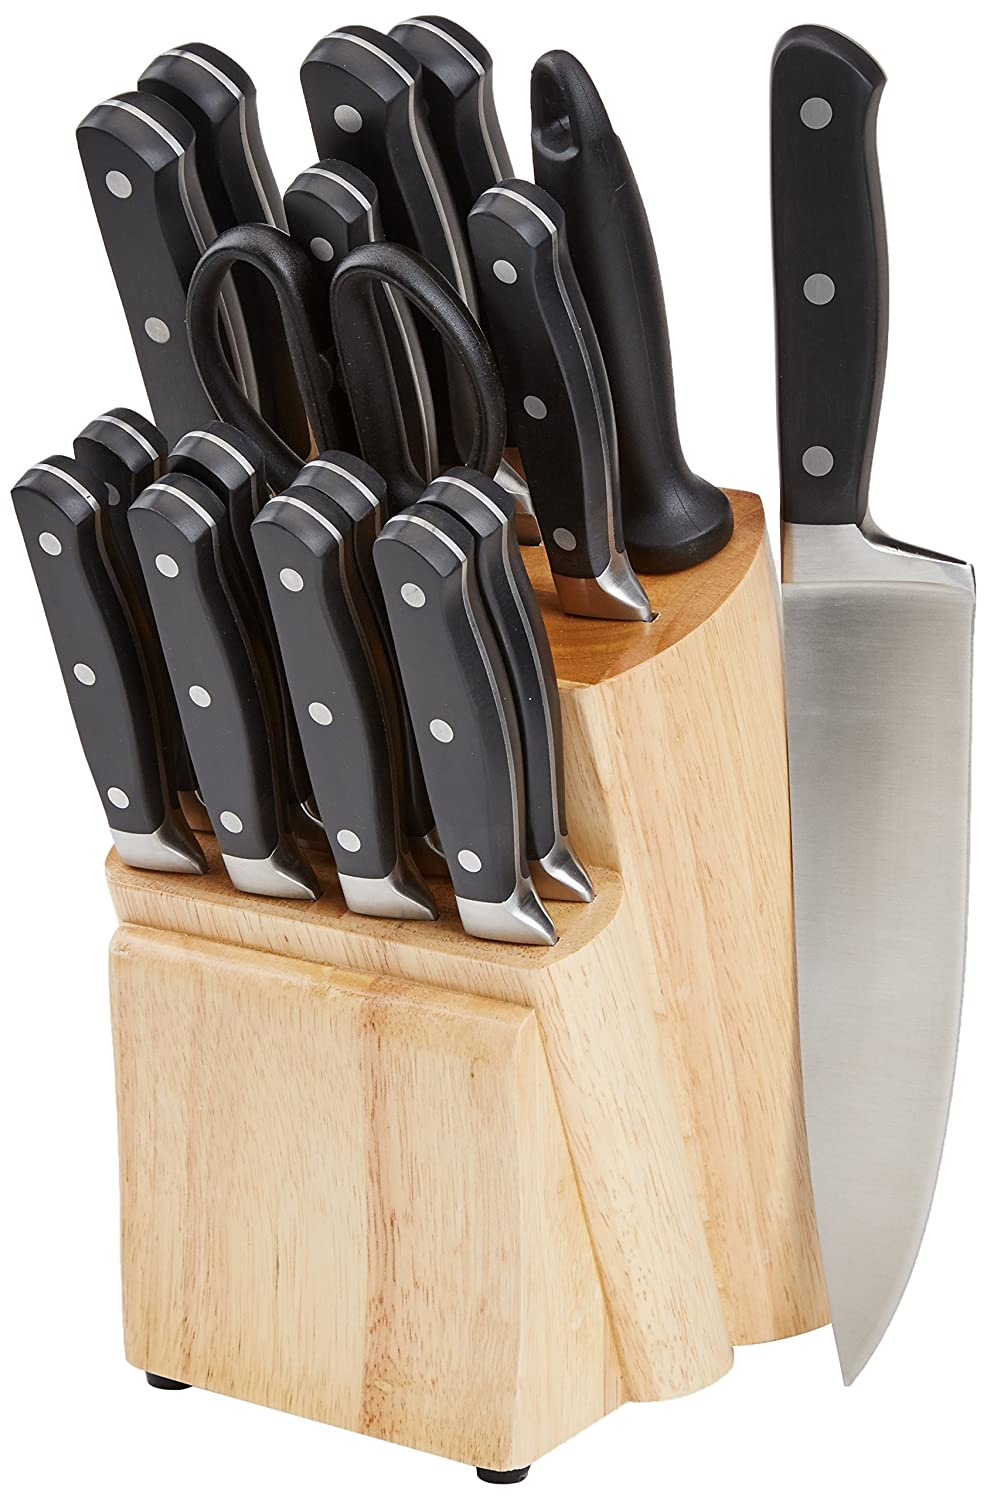 Amazon.com: AmazonBasics Premium 18 Piece Knife Block Set: Kitchen U0026 Dining